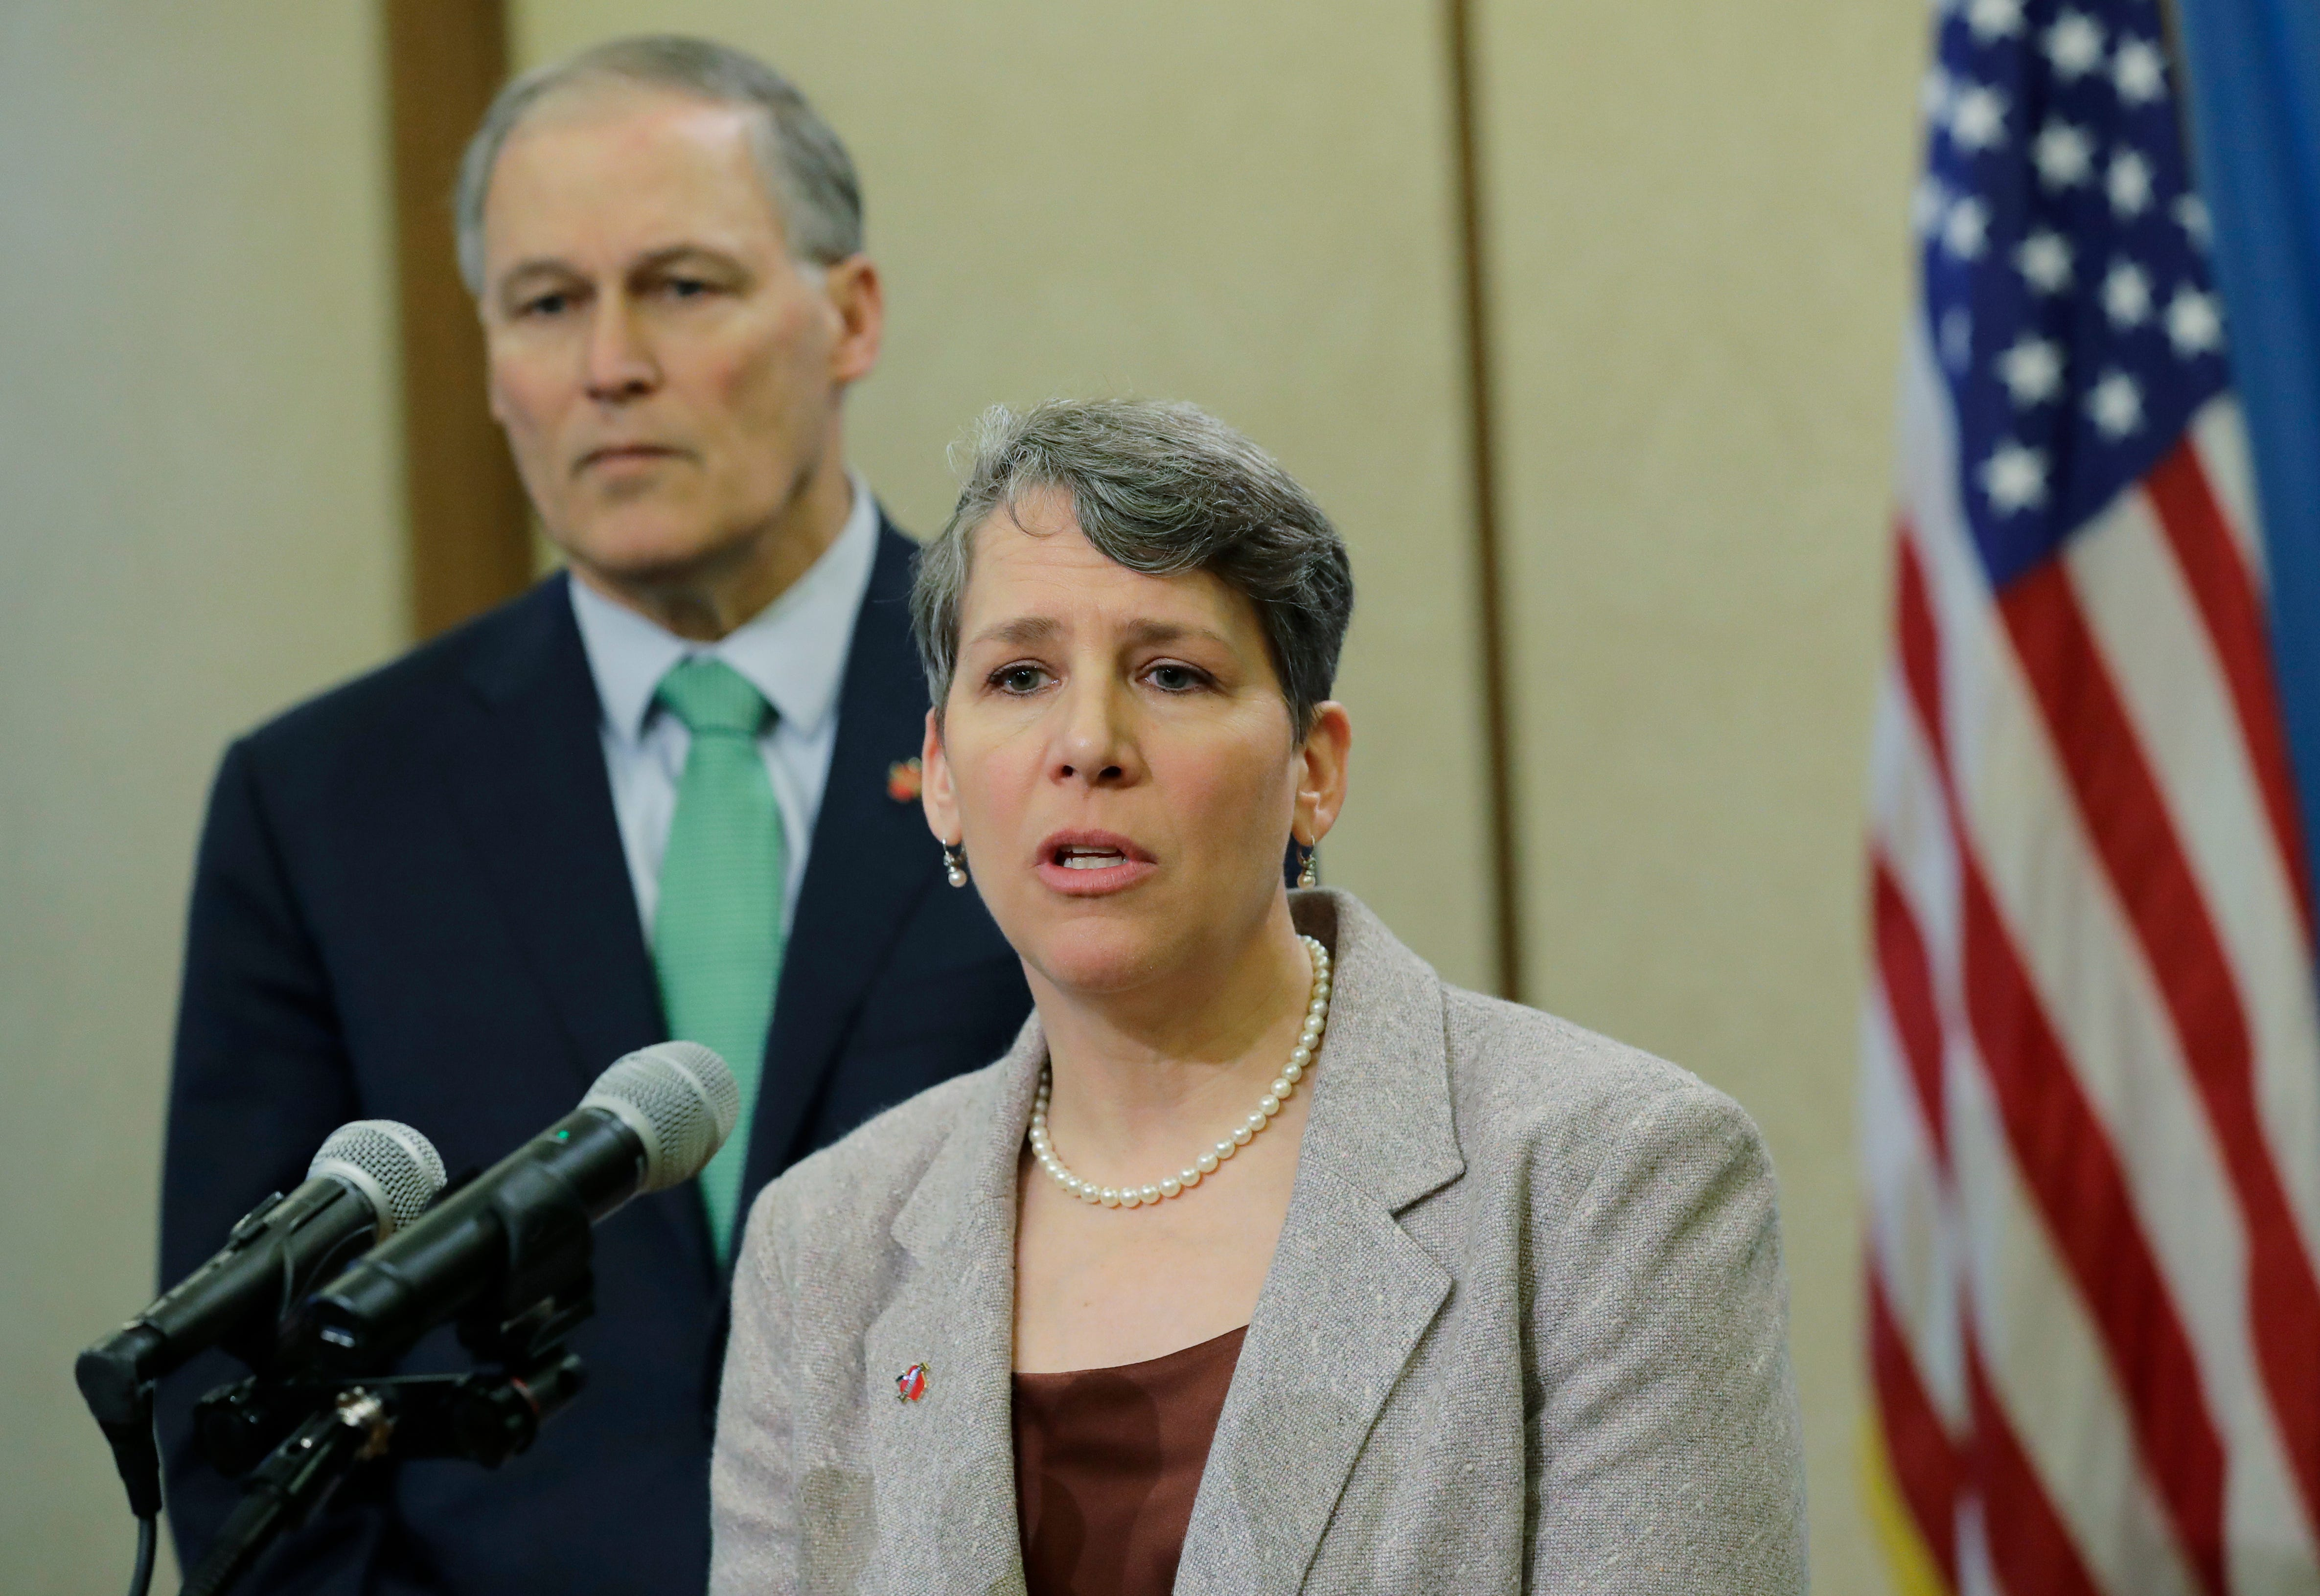 Suzi LeVine, commissioner of Washington state's Employment Security Department, said she knew something was wrong this spring when the number of jobless claims being filed was 10-fold what she expected. The wave of imposter fraud led to $600 million in improper payments and calls for Gov. Jay Inslee to fire LeVine. The state has recovered $357 million so far.